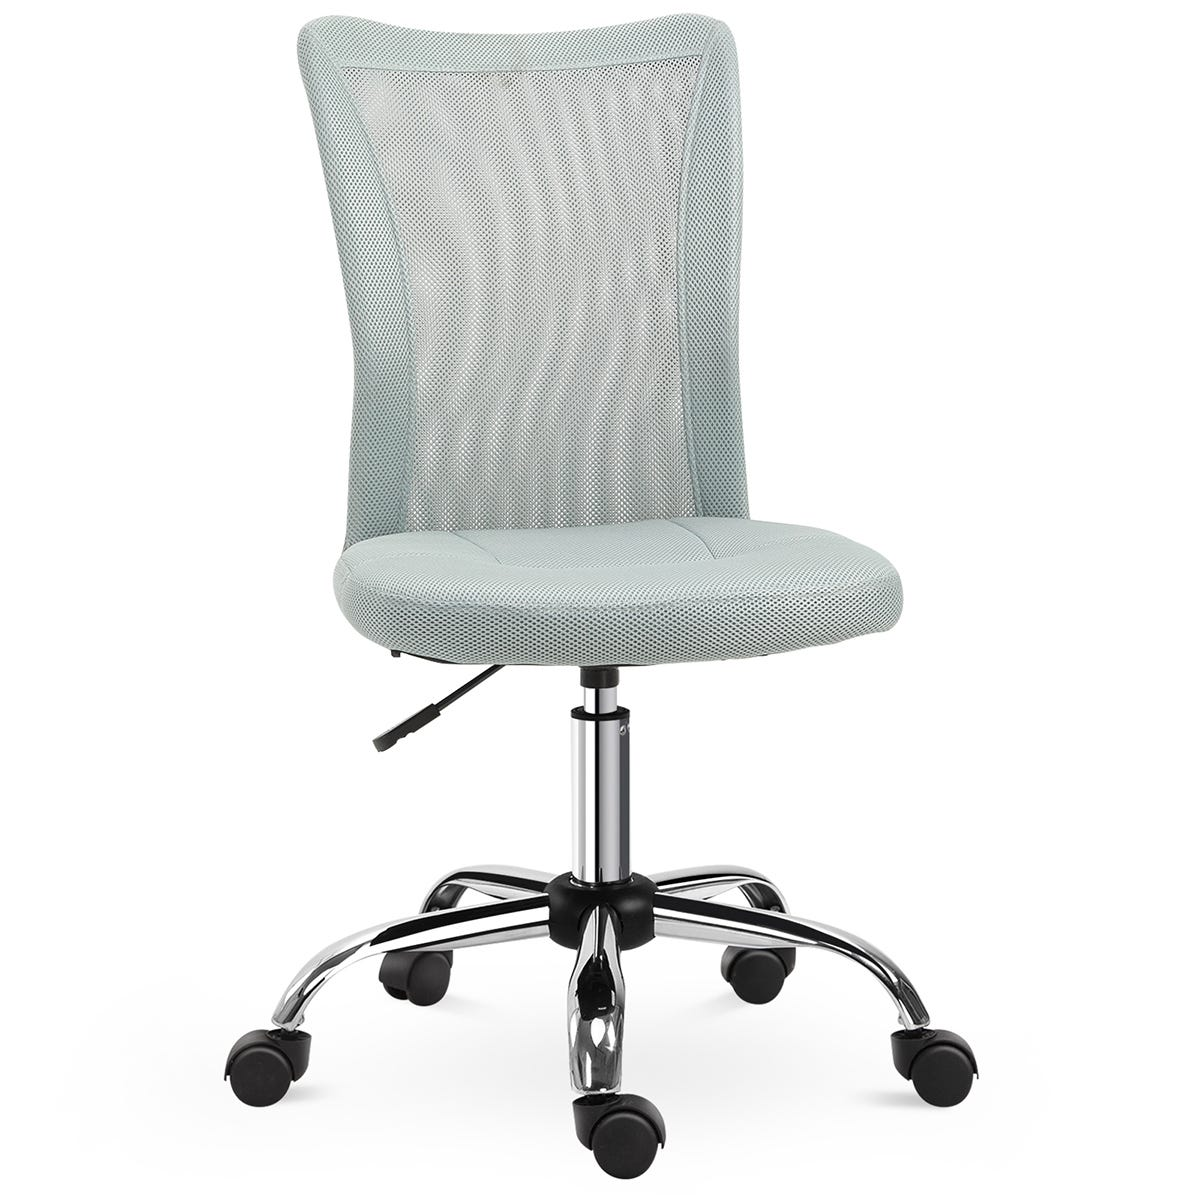 Solstice Armless Ergonomic Mesh Office Chair with Height Adjustable Back - Grey